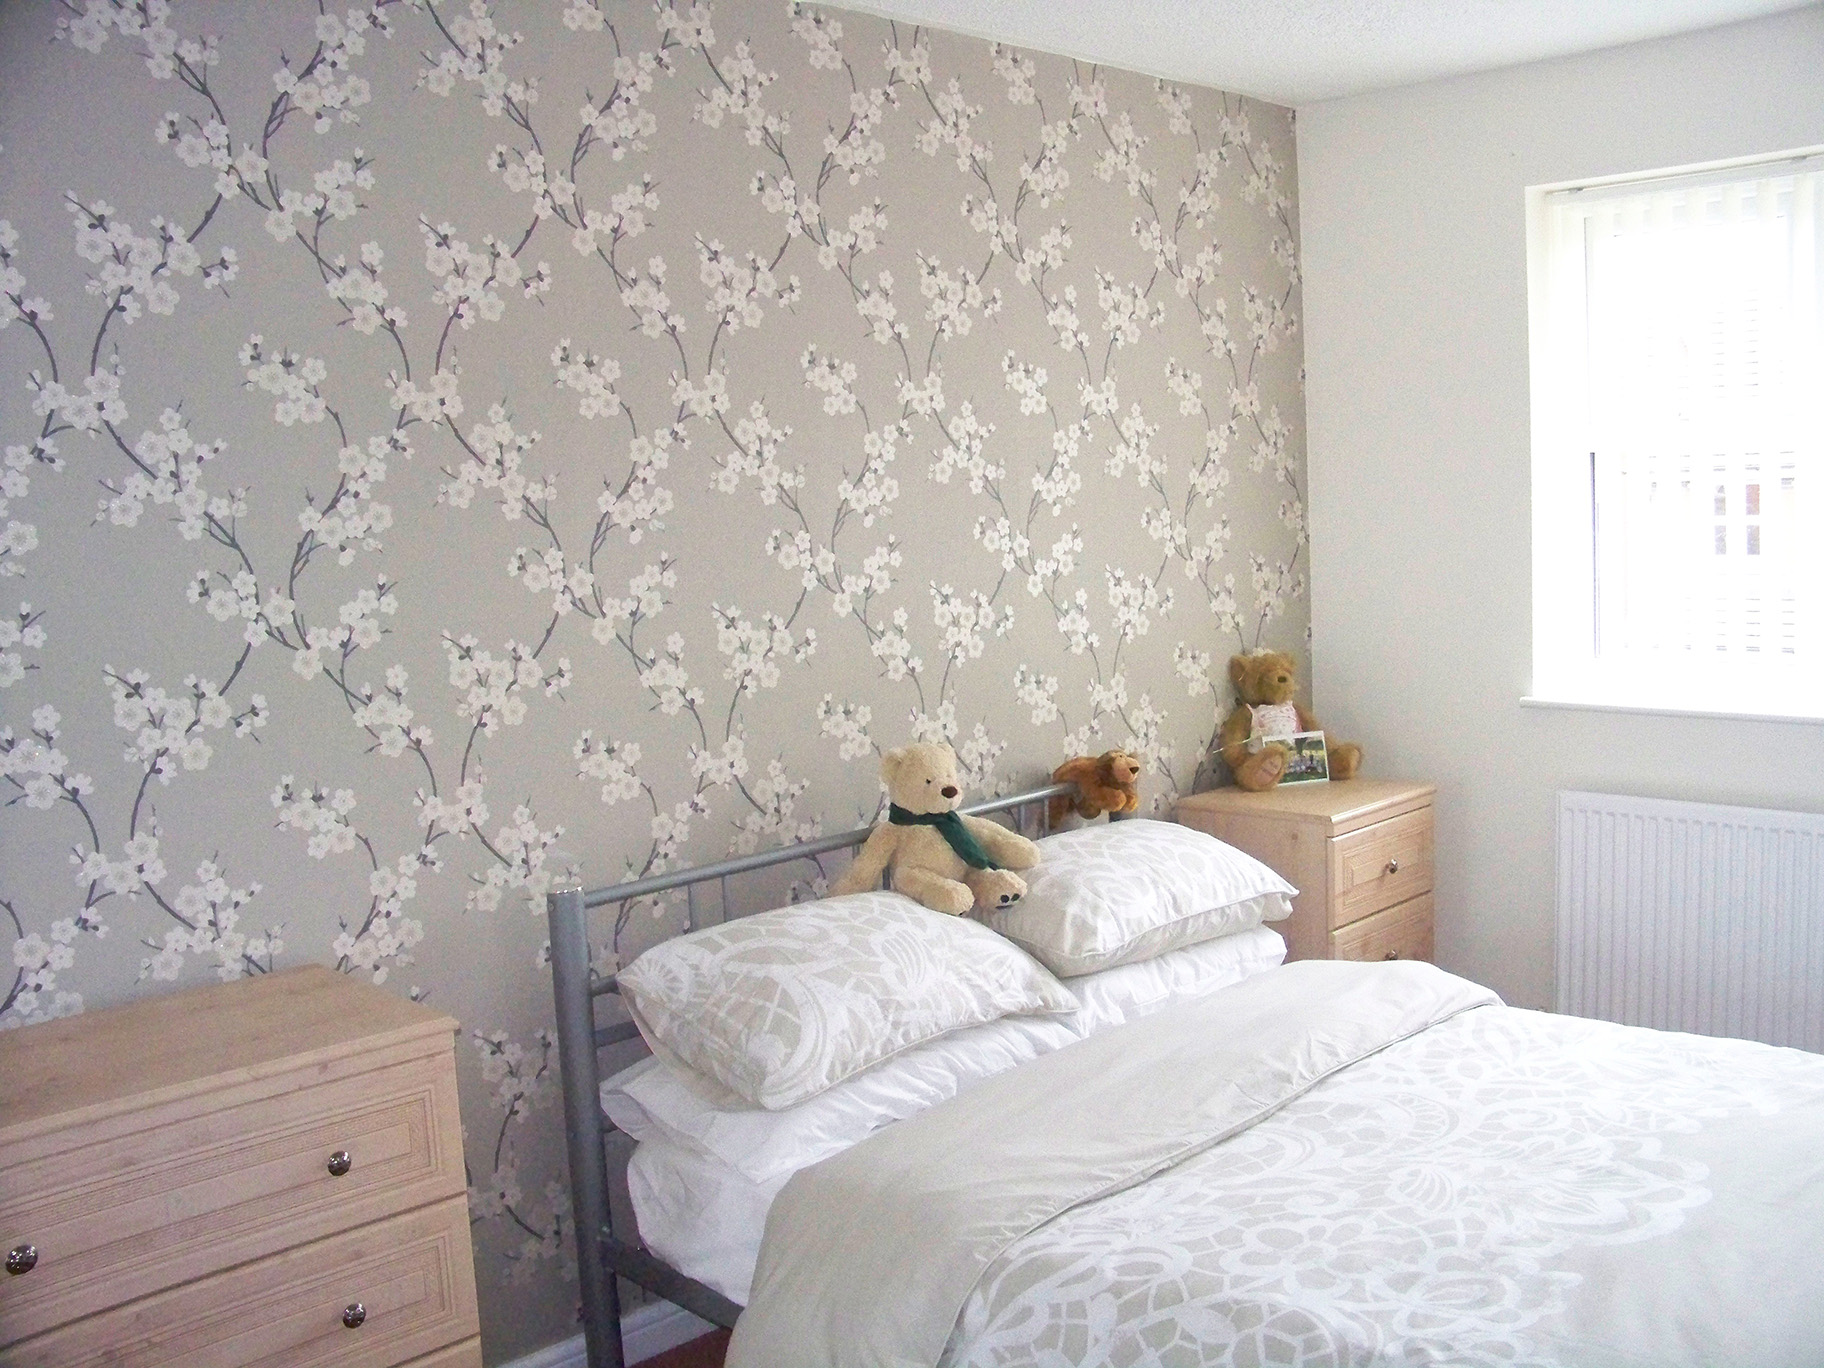 wallpapering services surrey